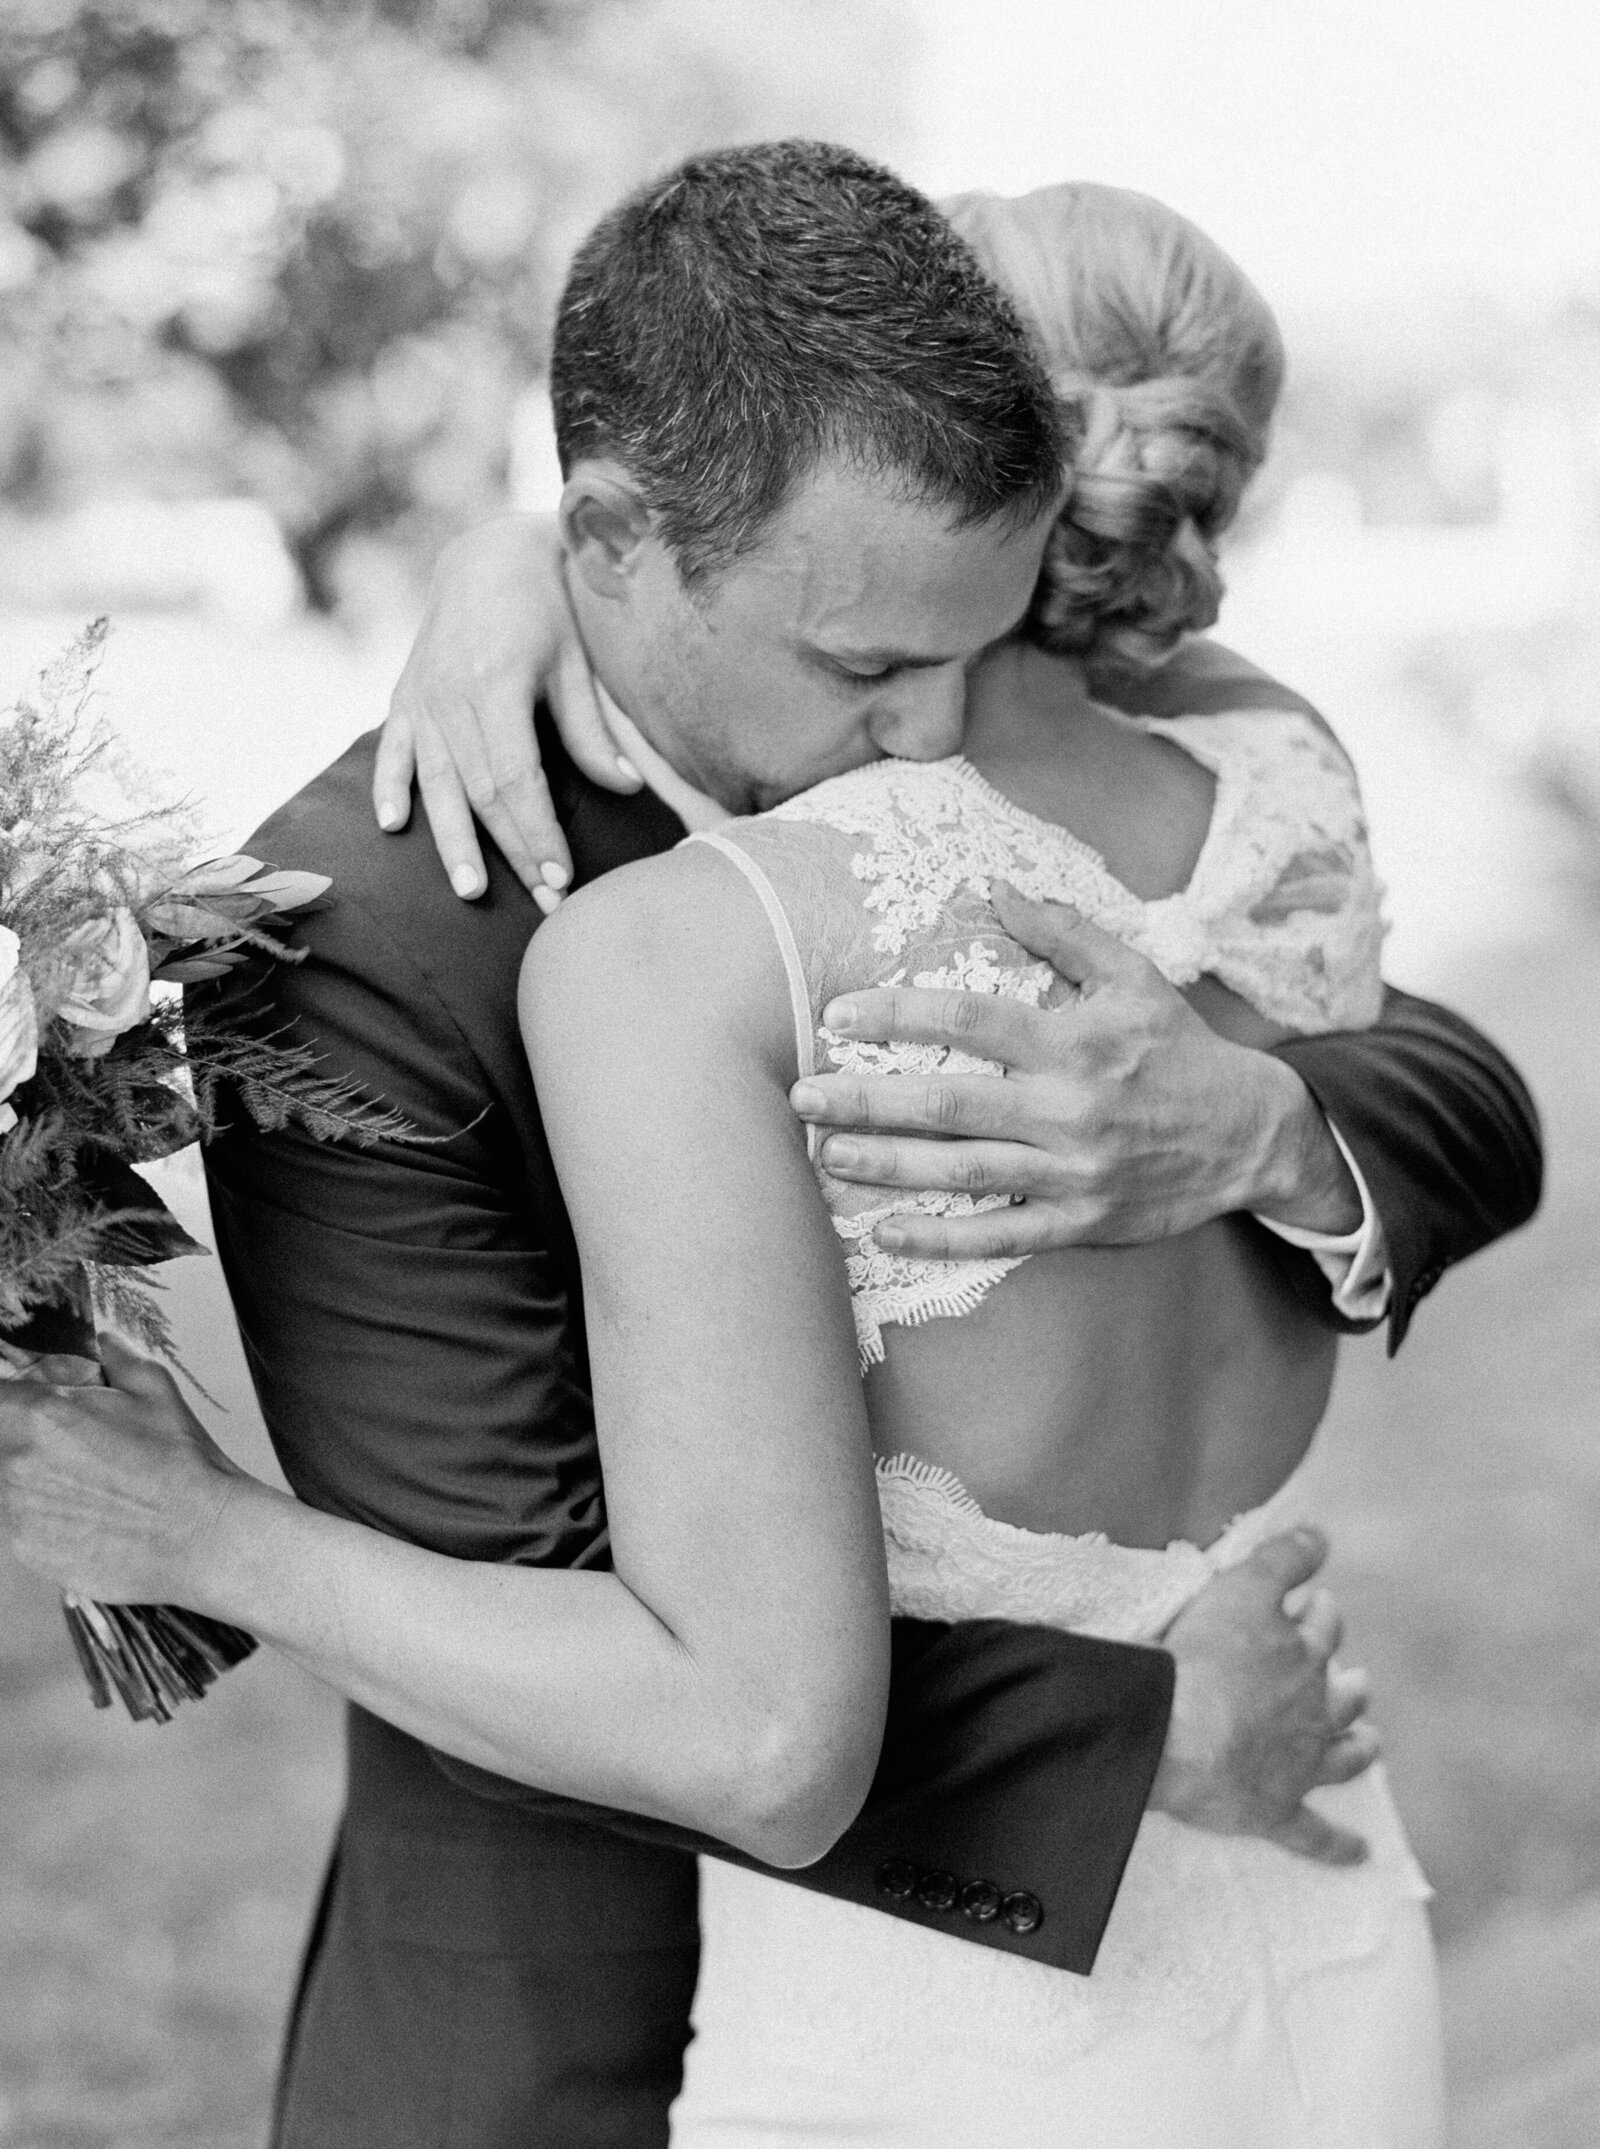 joshua aull photography dallas wedding photographer_0114